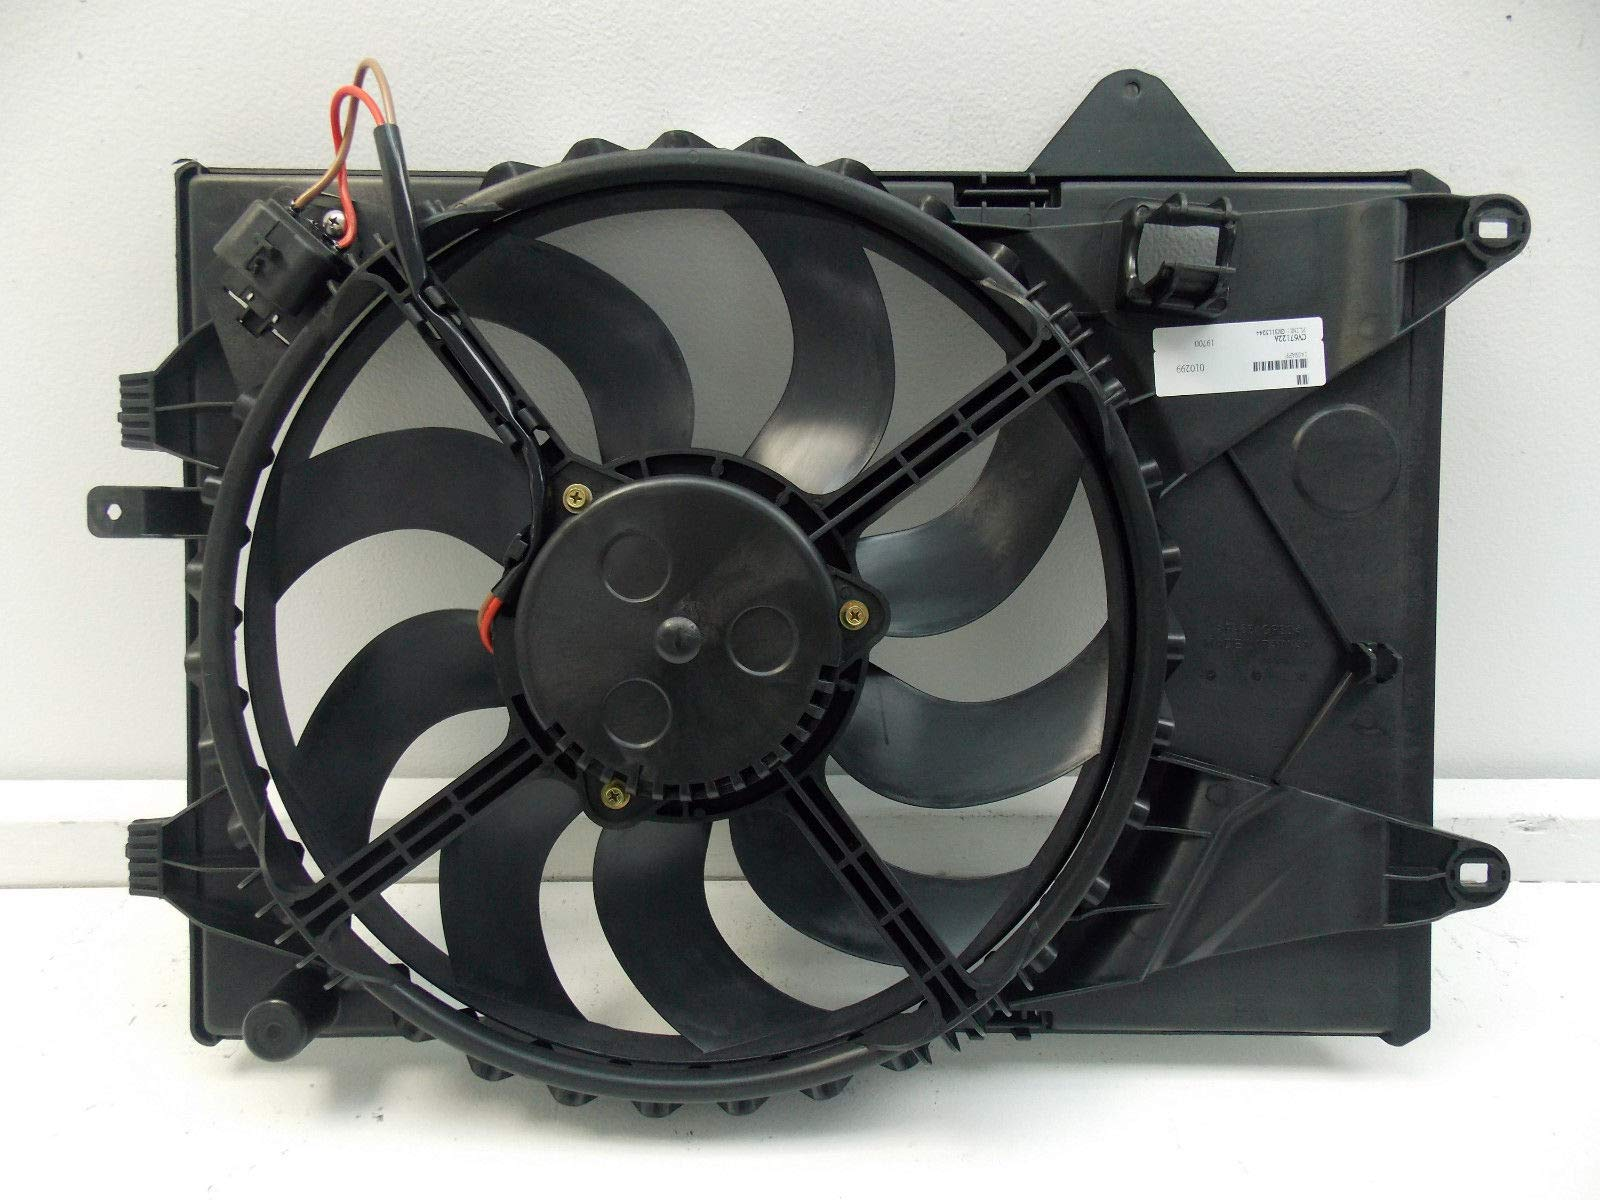 RADIATOR CONDENSER COOLING FAN FOR CHEVY FITS SONIC 1.8 L4 4CYL GM3115244